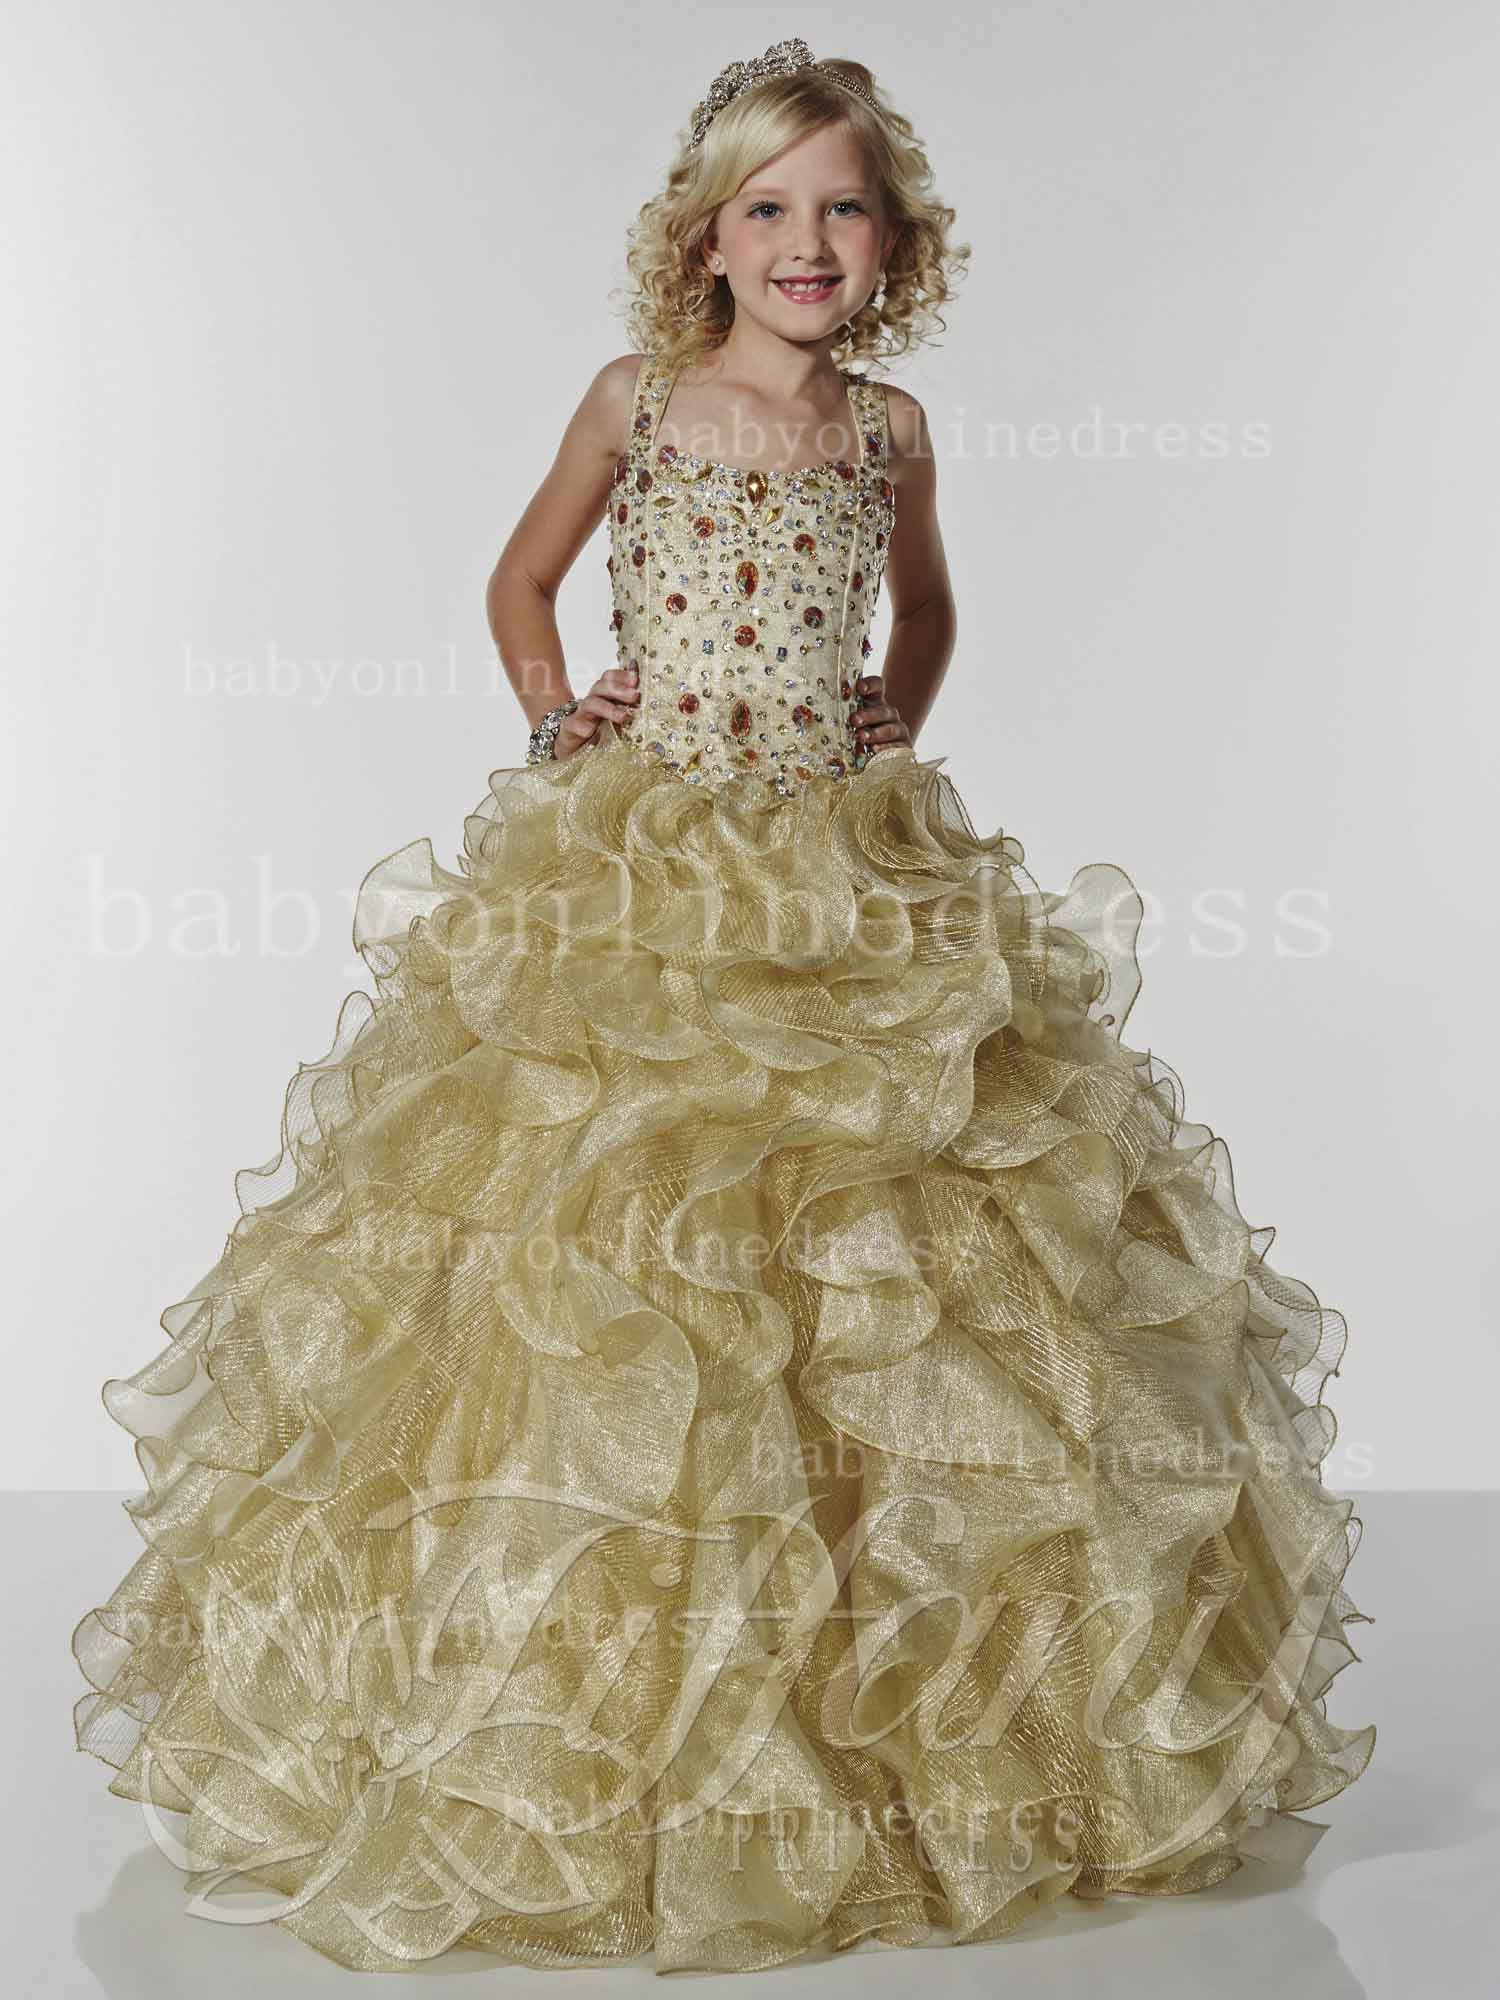 Girls Pageant Dresses For Sale Designer 2014 Straps Crystal Ball ...